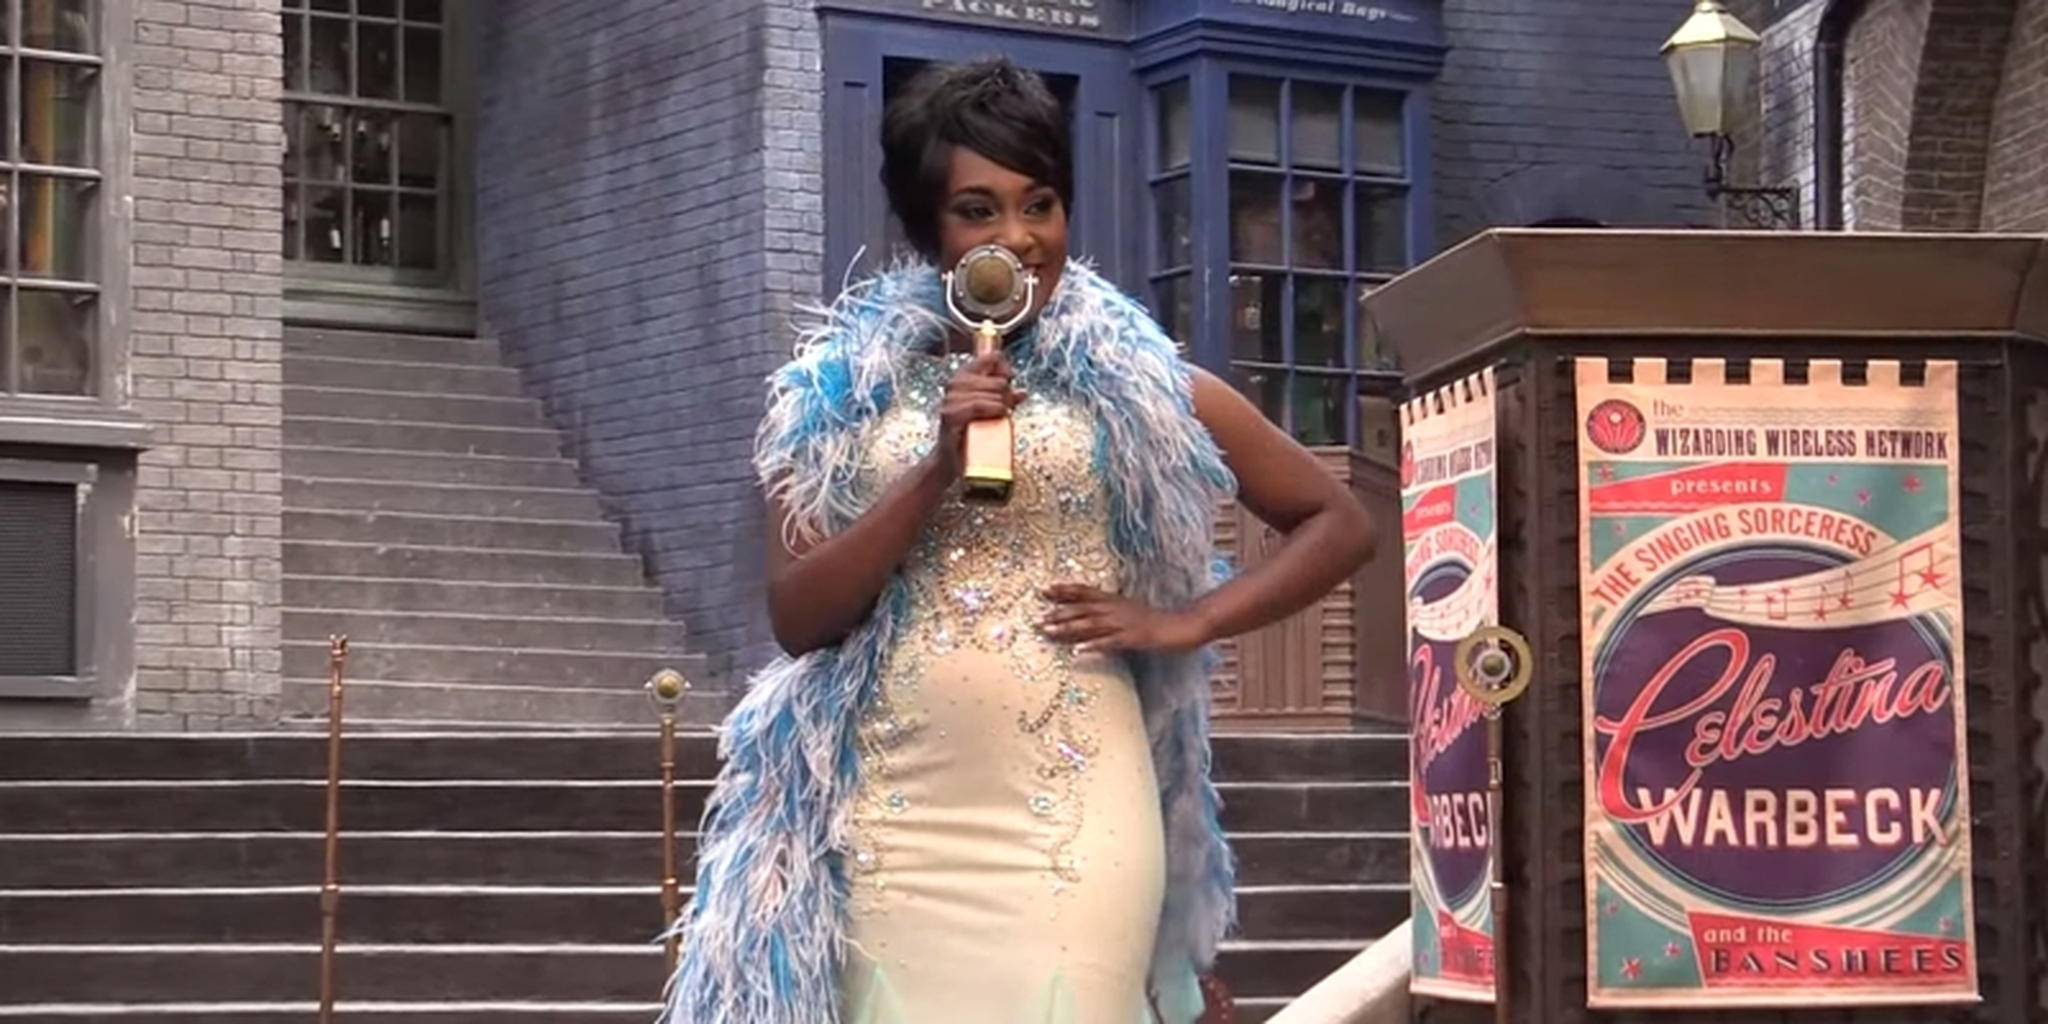 celestina warbeck with microphone